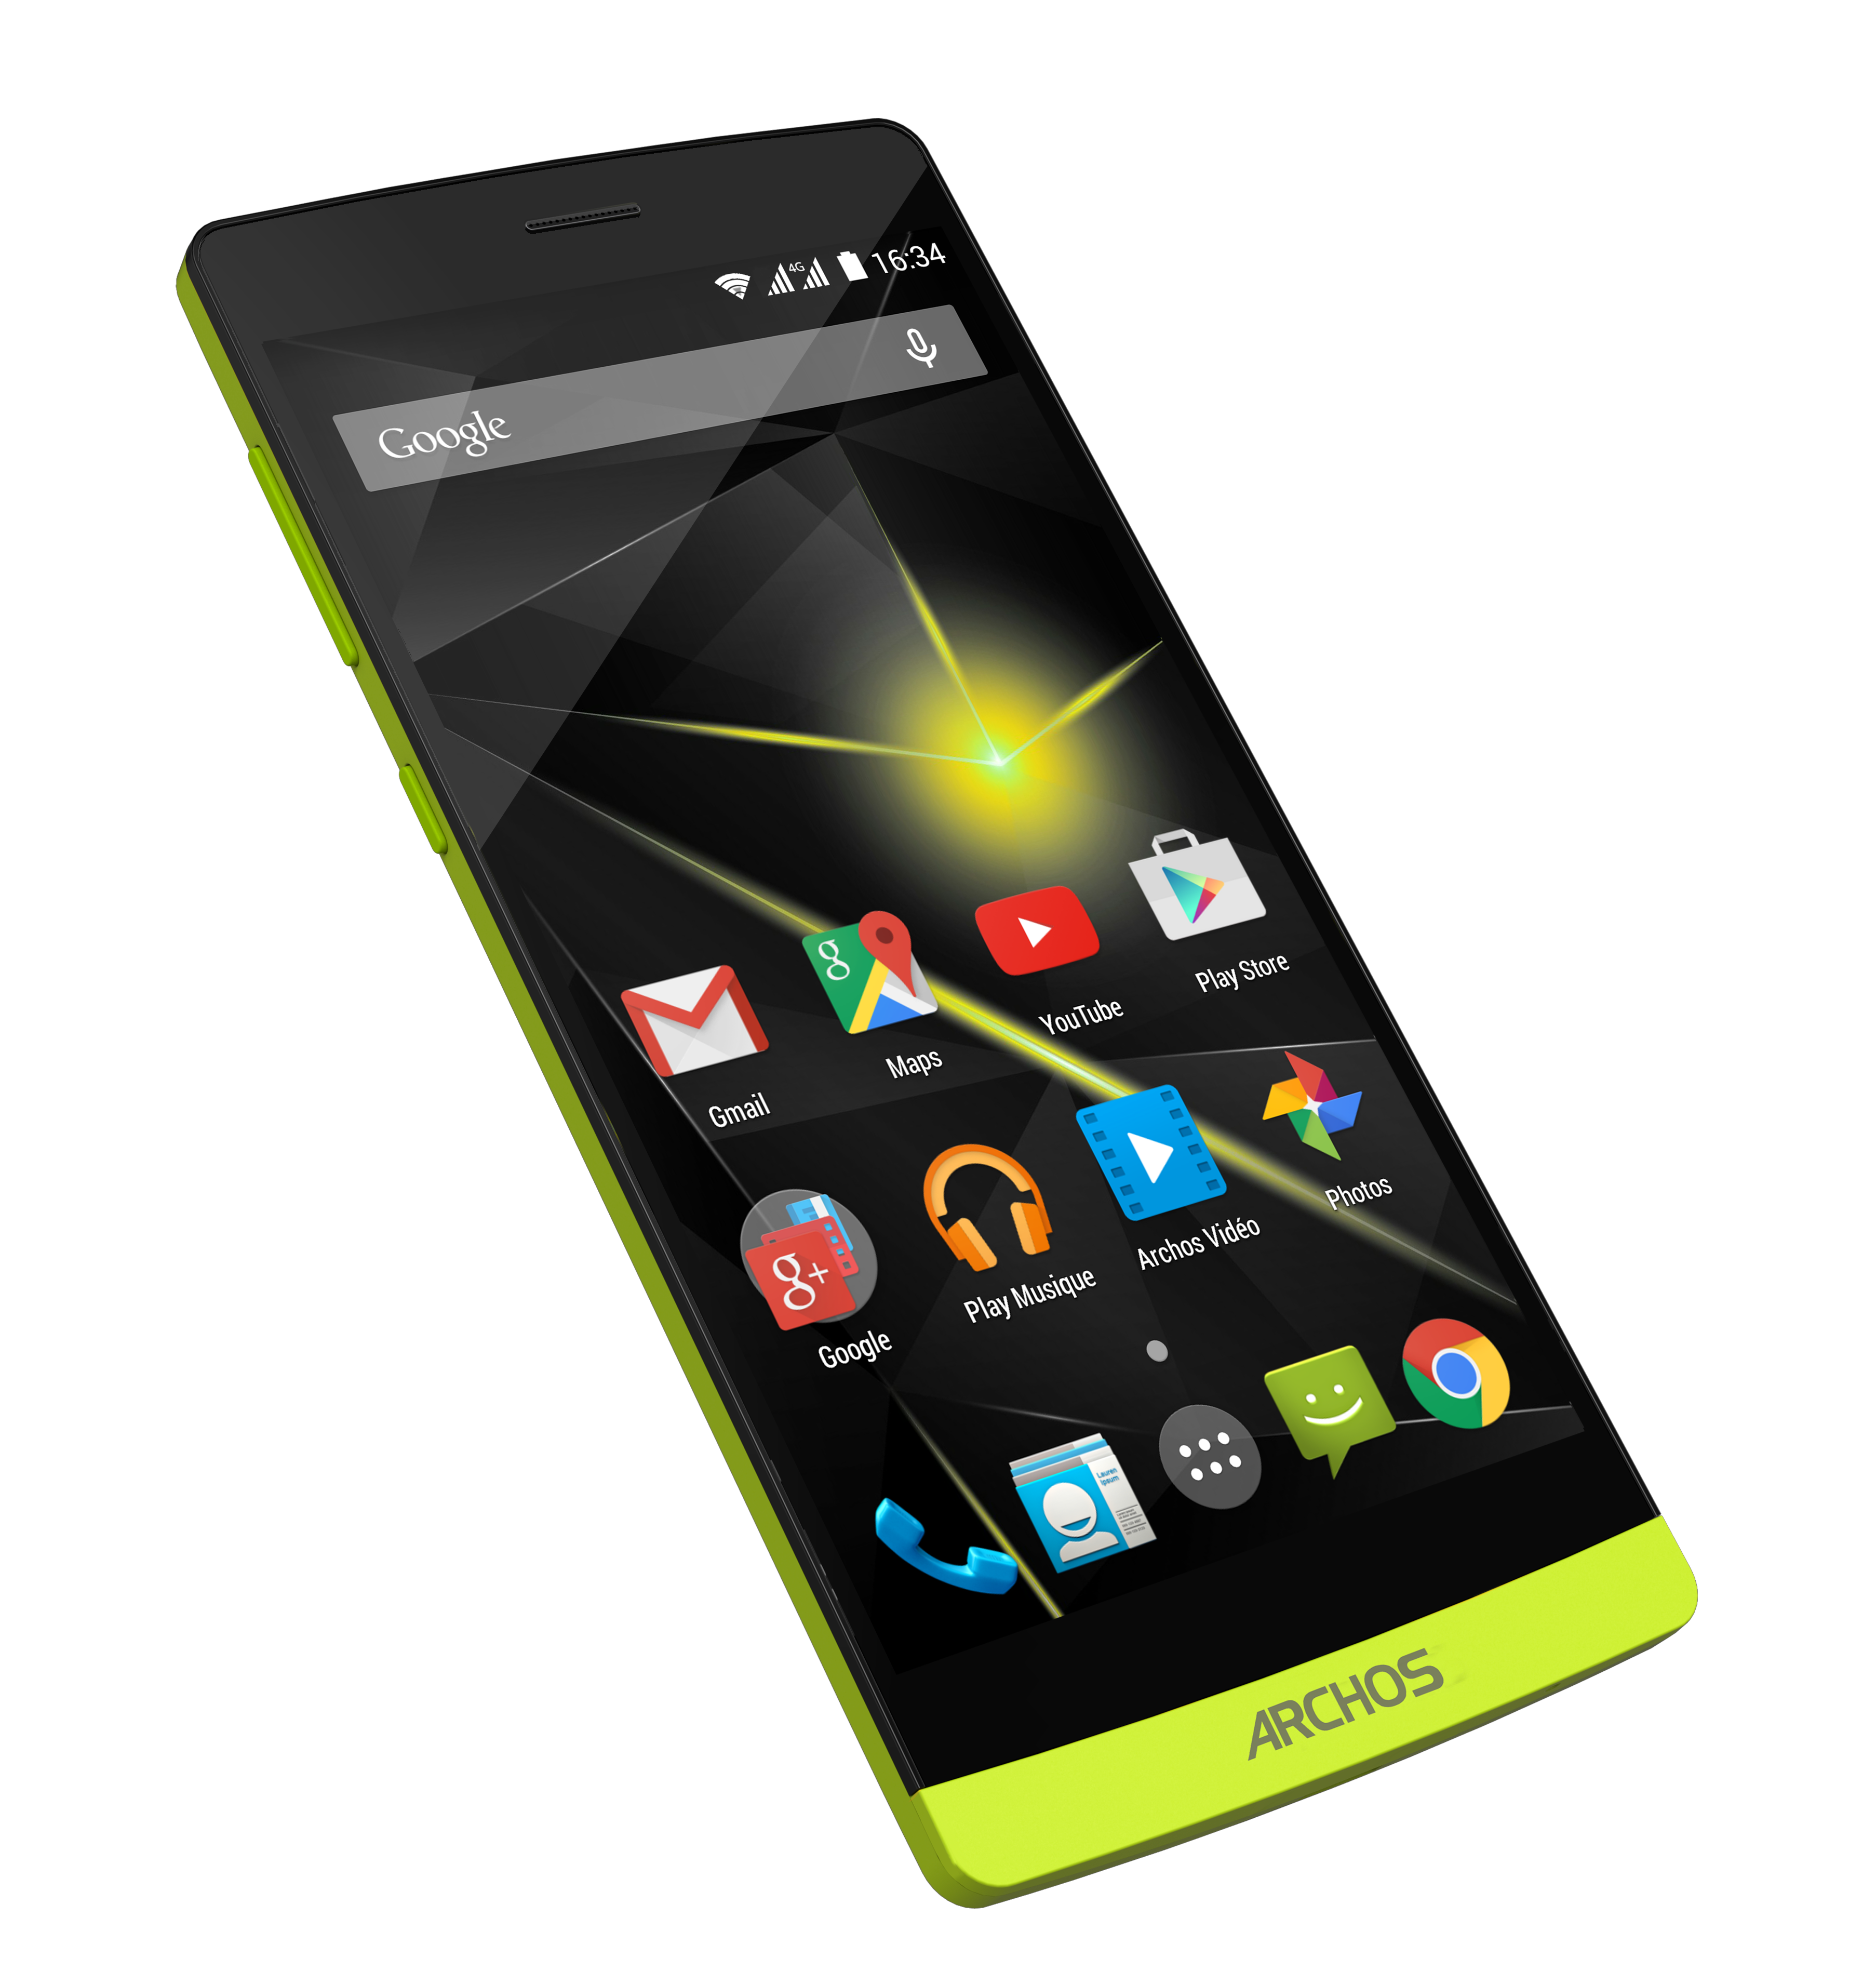 archos 50 diamond smartphones description. Black Bedroom Furniture Sets. Home Design Ideas